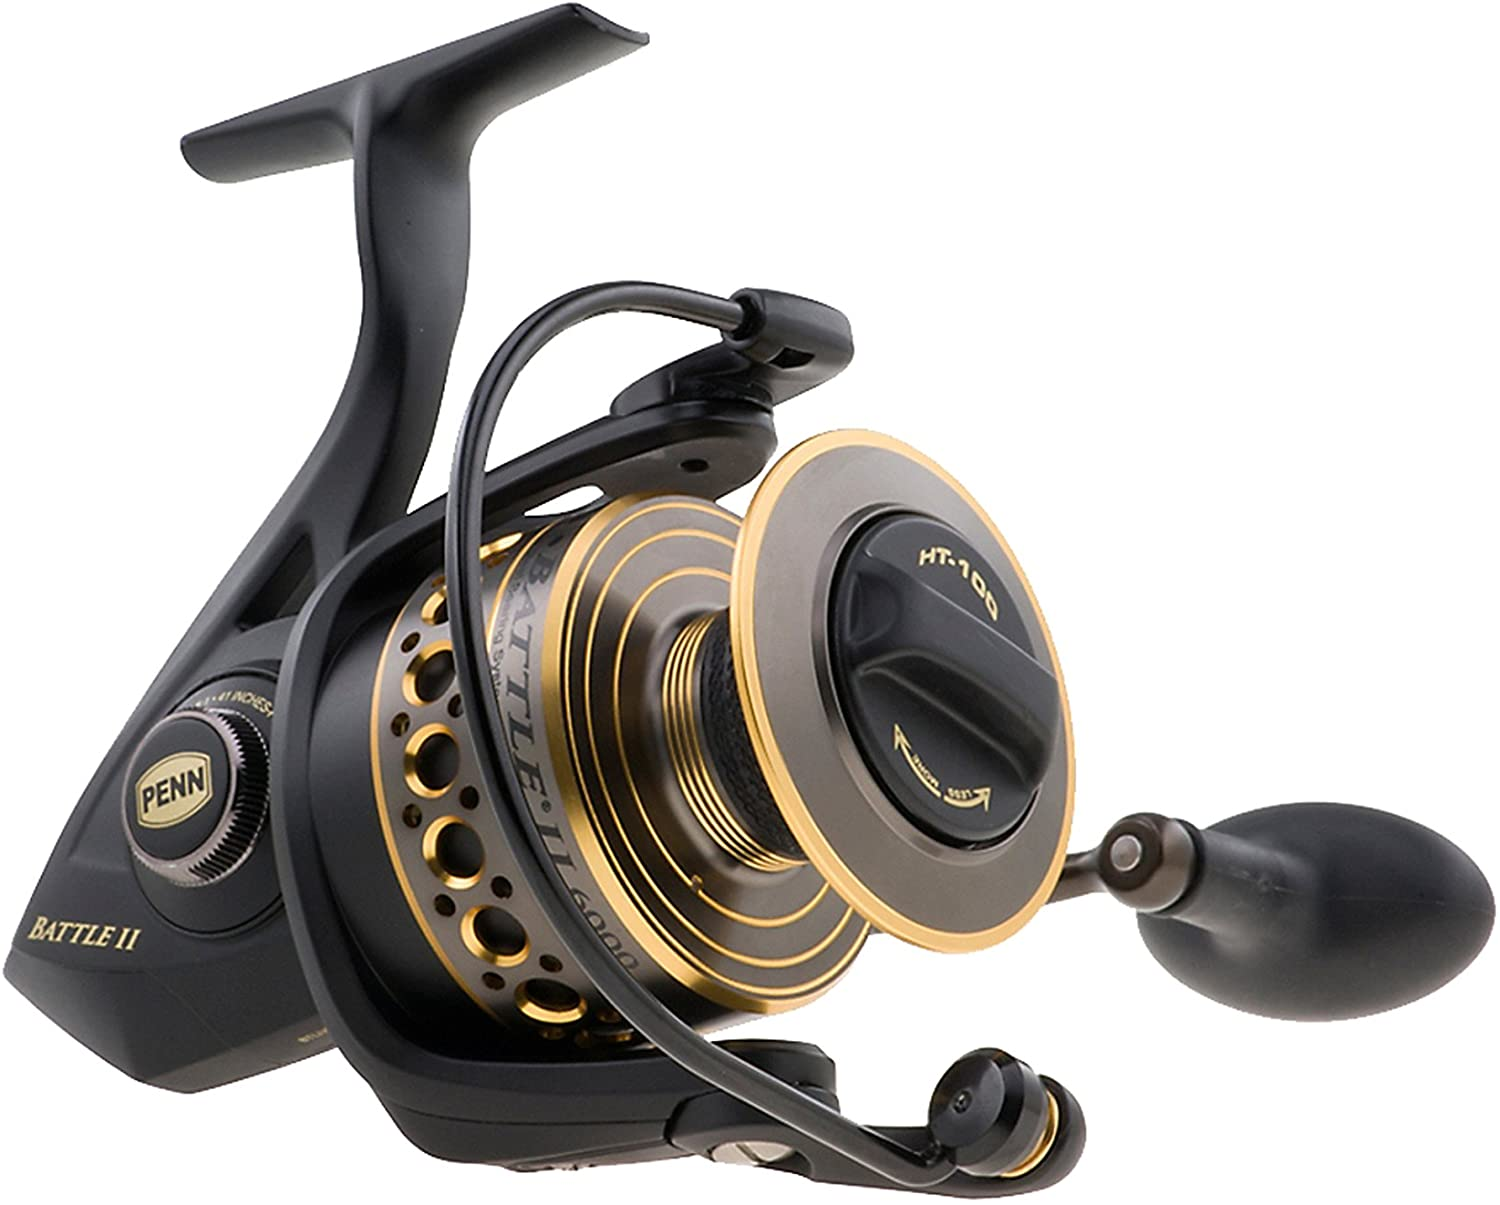 Penn Battle II And III Spinning Reel